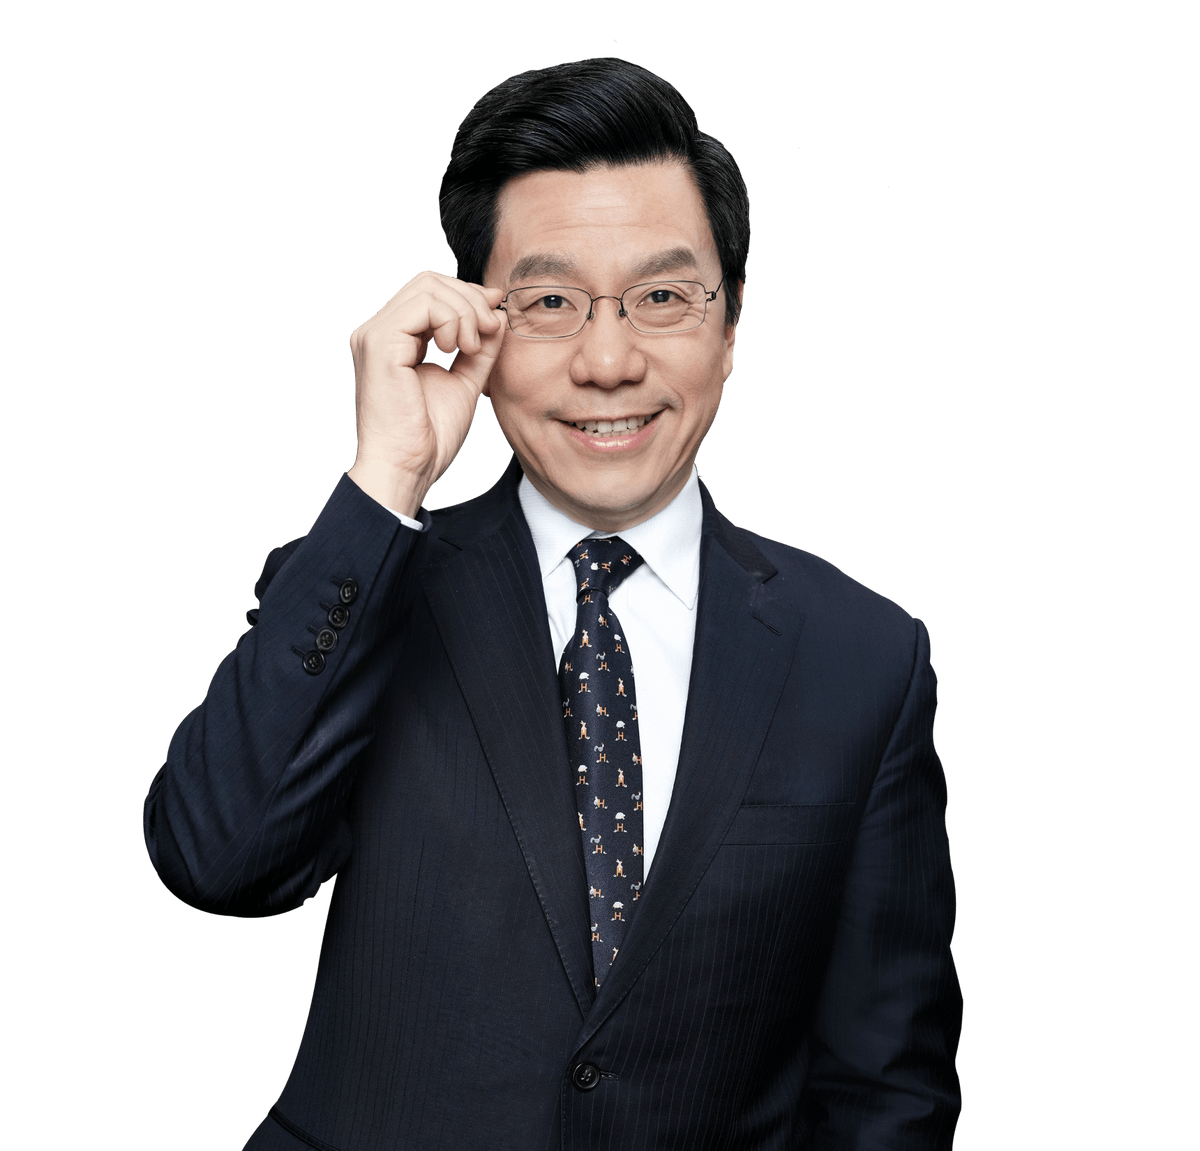 Kai-Fu Lee, Founder and CEO of Sinovation Ventures with over 30 years of AI expertise in research, development and invstment